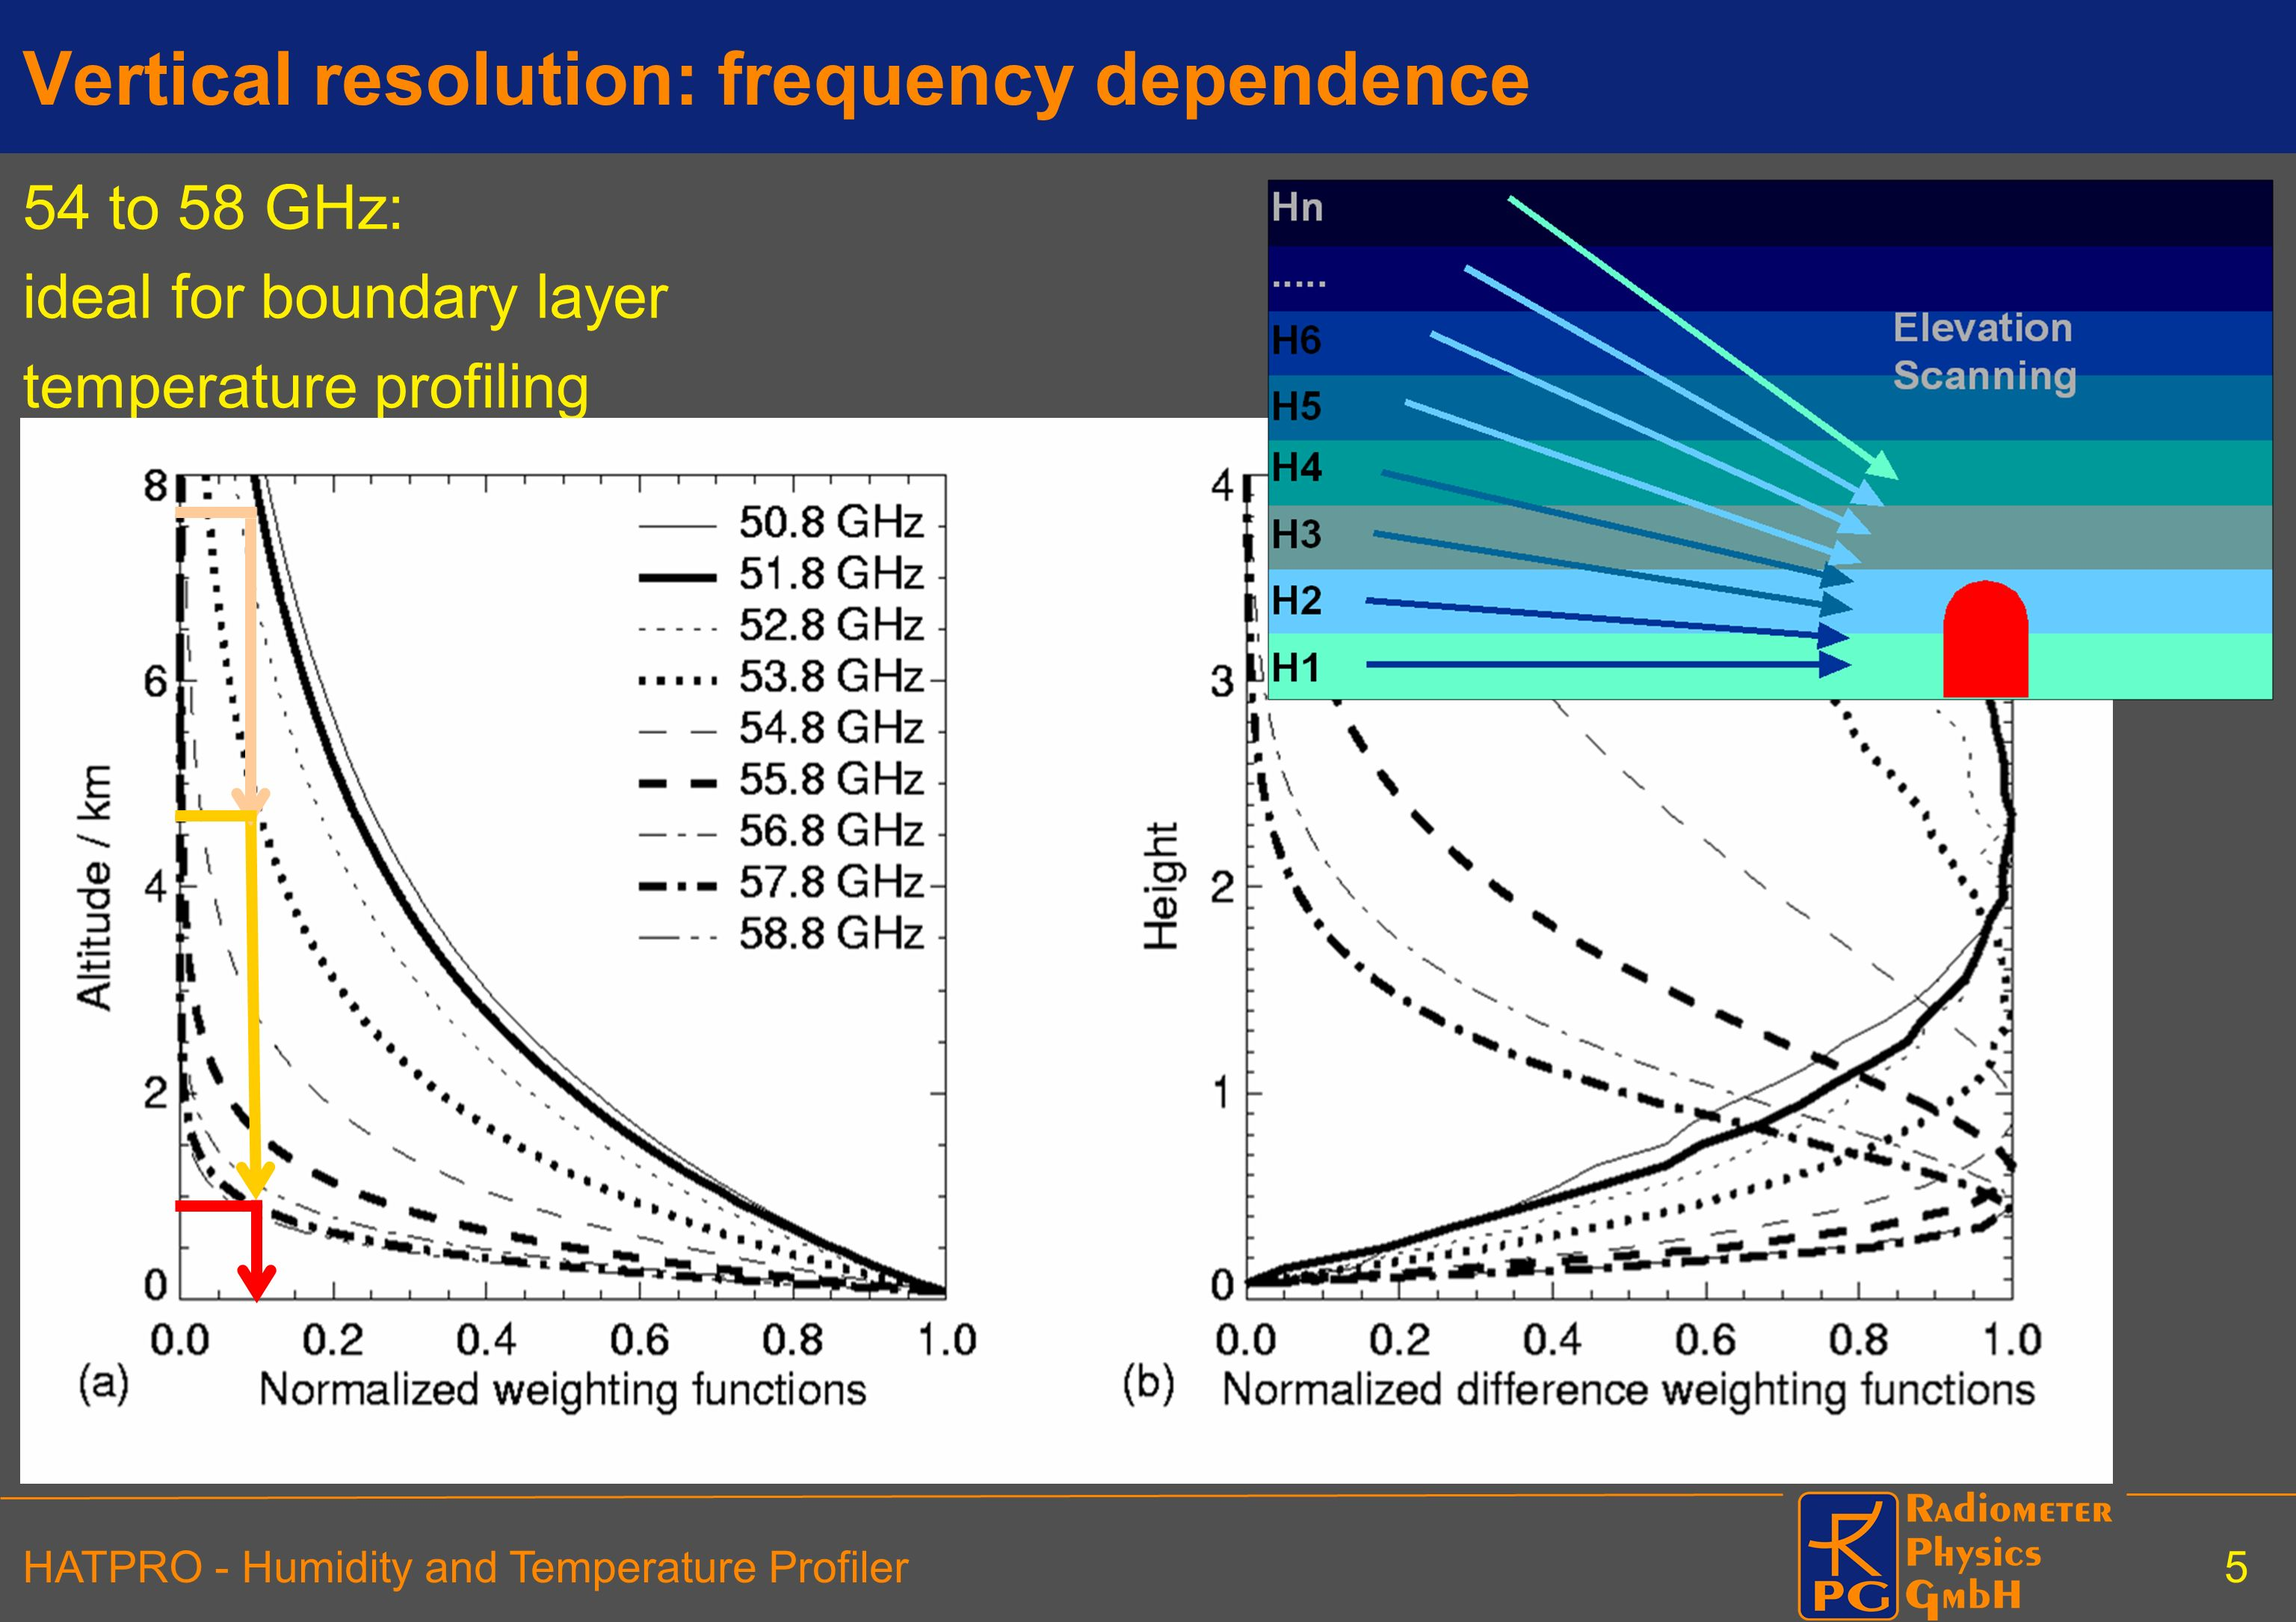 Vertical resolution: frequency dependence